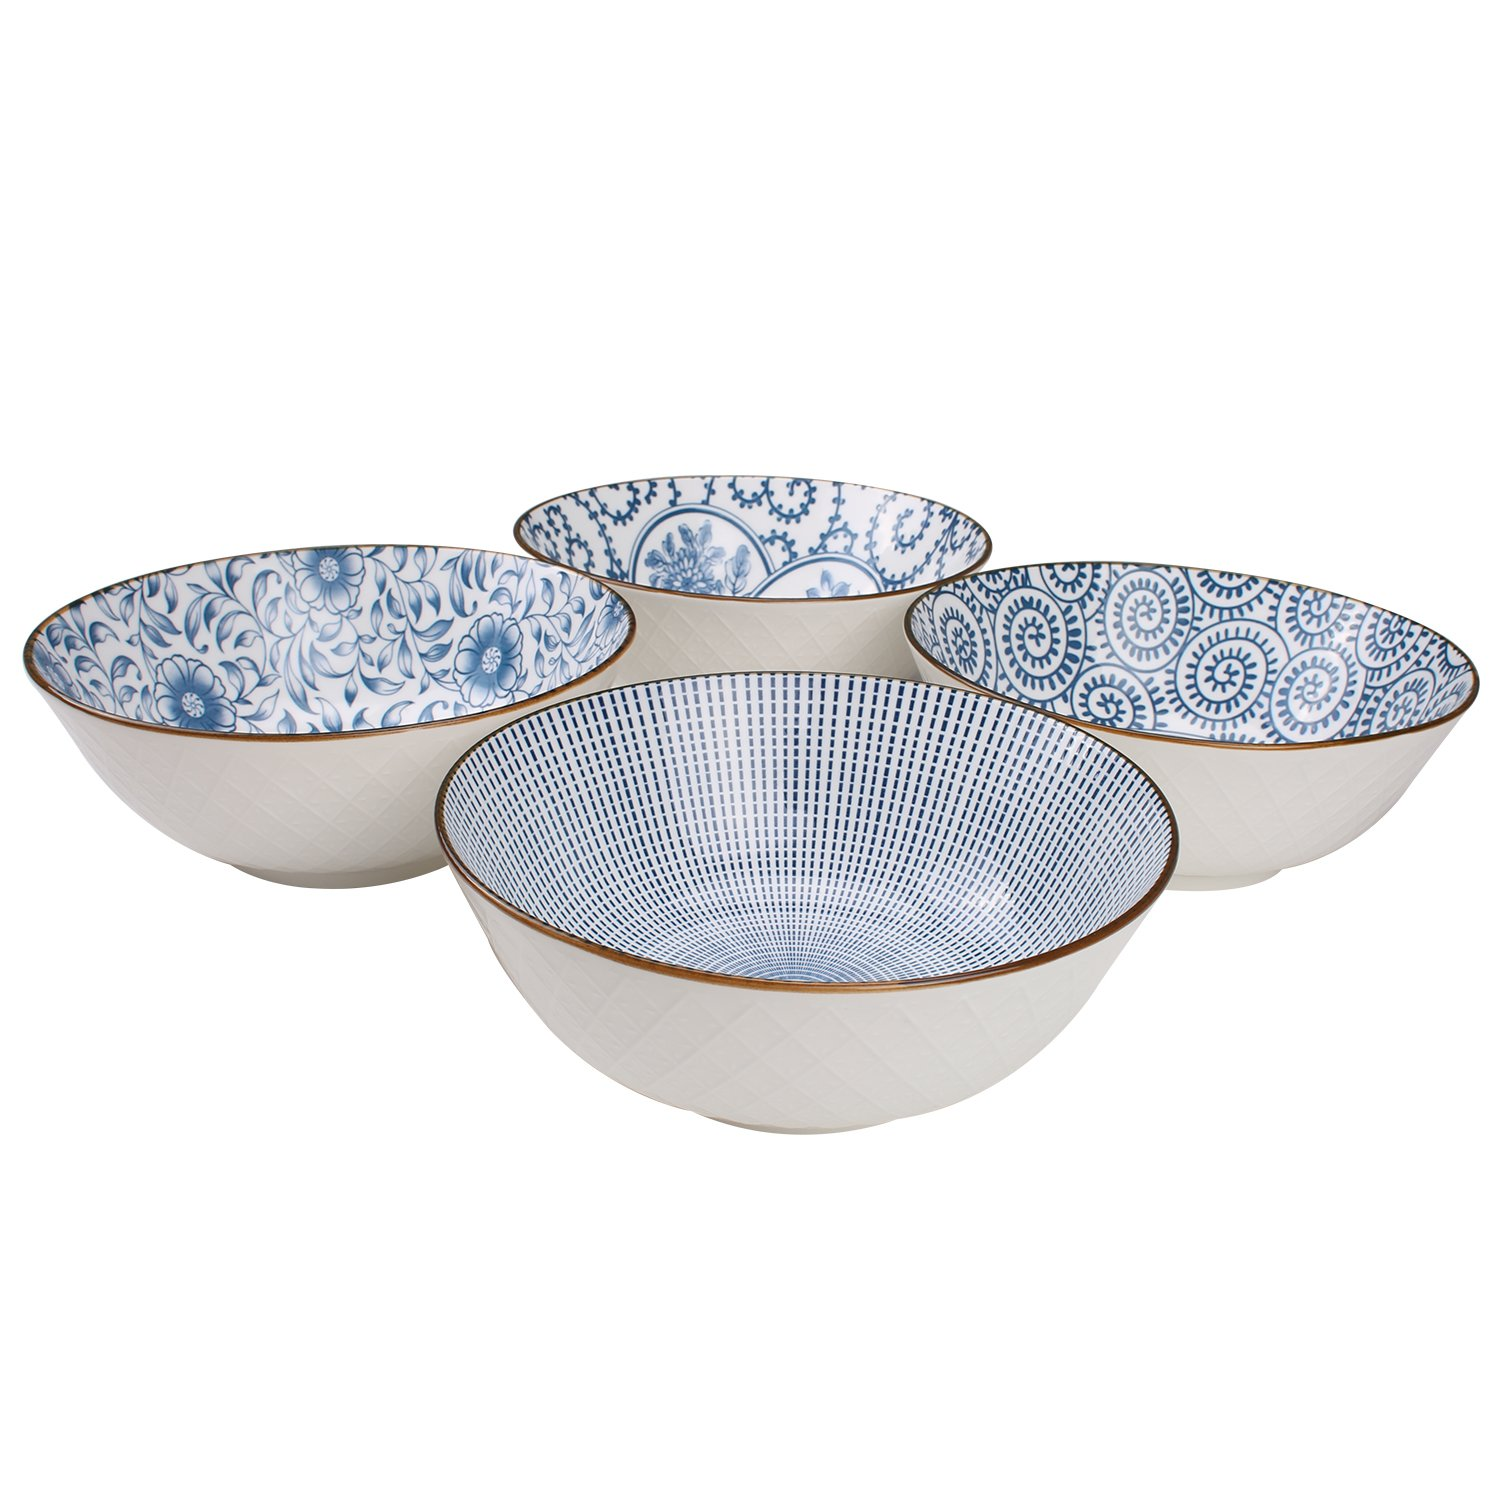 40-Ounce Porcelain Soup,Salad,Pasta Serving Bowls, Assorted Floral Patterns, Stackable Deep Bowl Set of 4